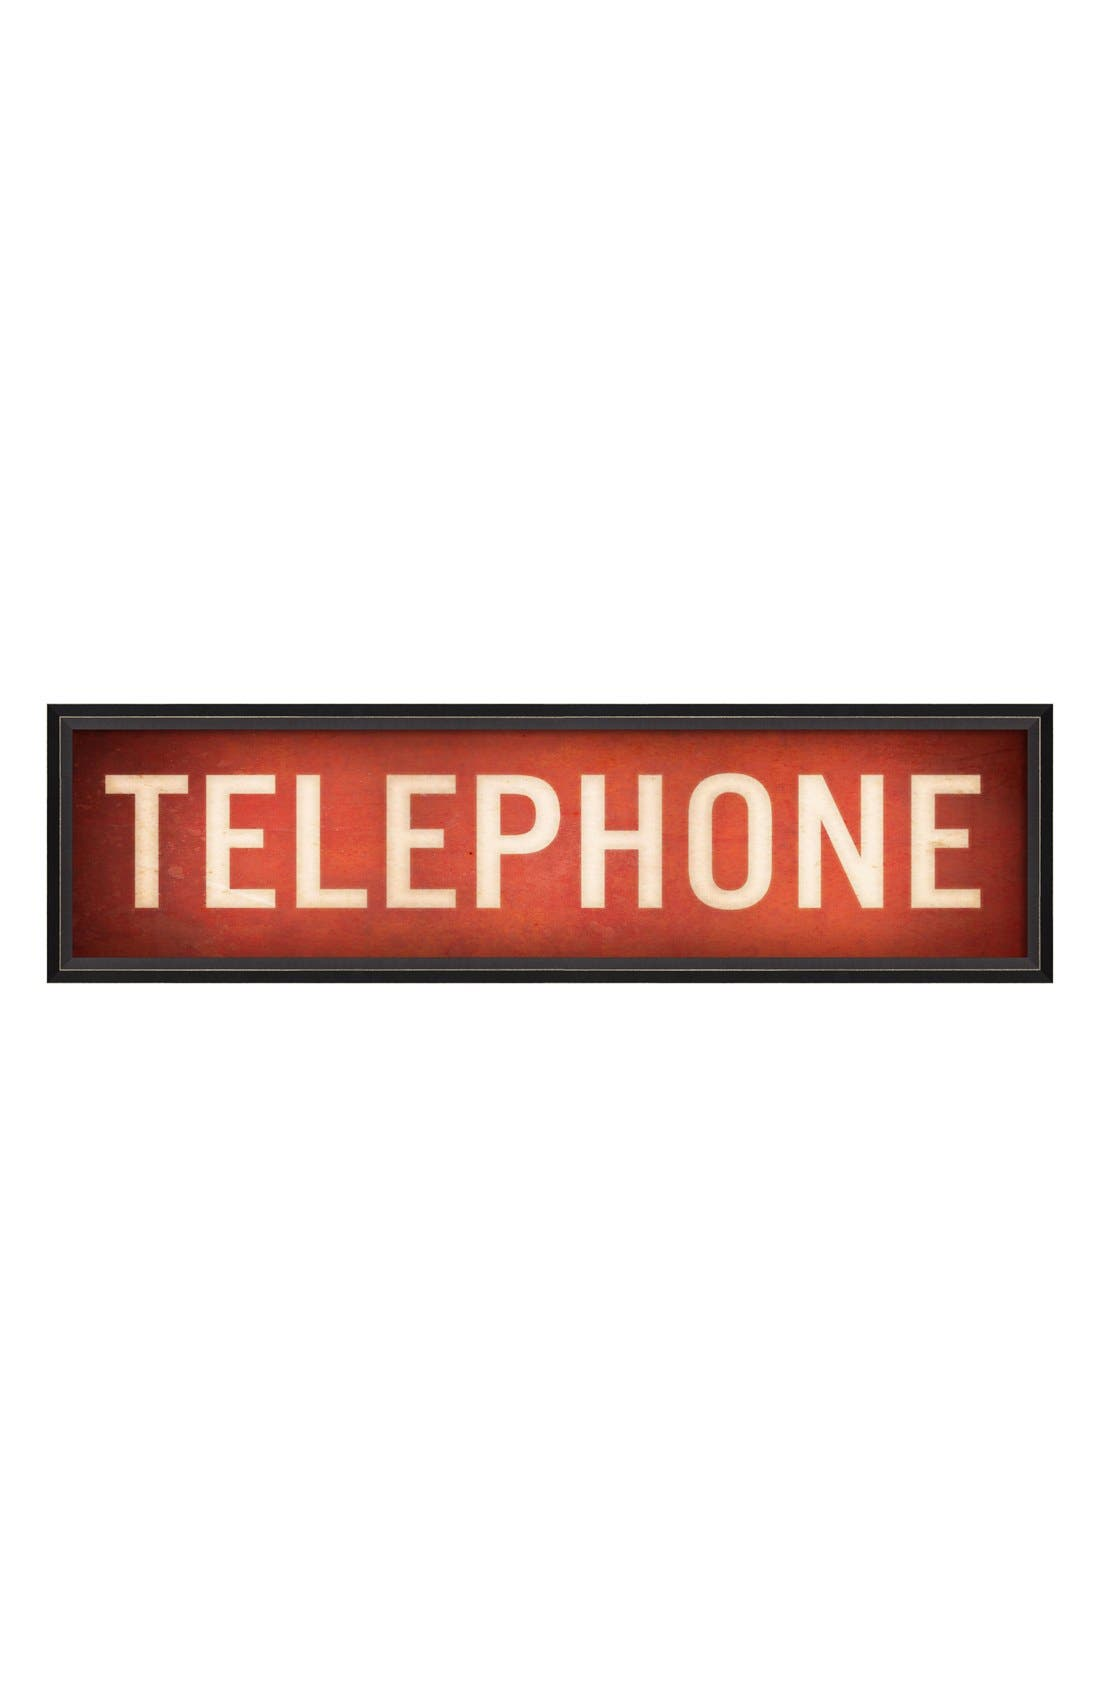 Alternate Image 1 Selected - Spicher and Company 'Telephone' Vintage Look Sign Artwork